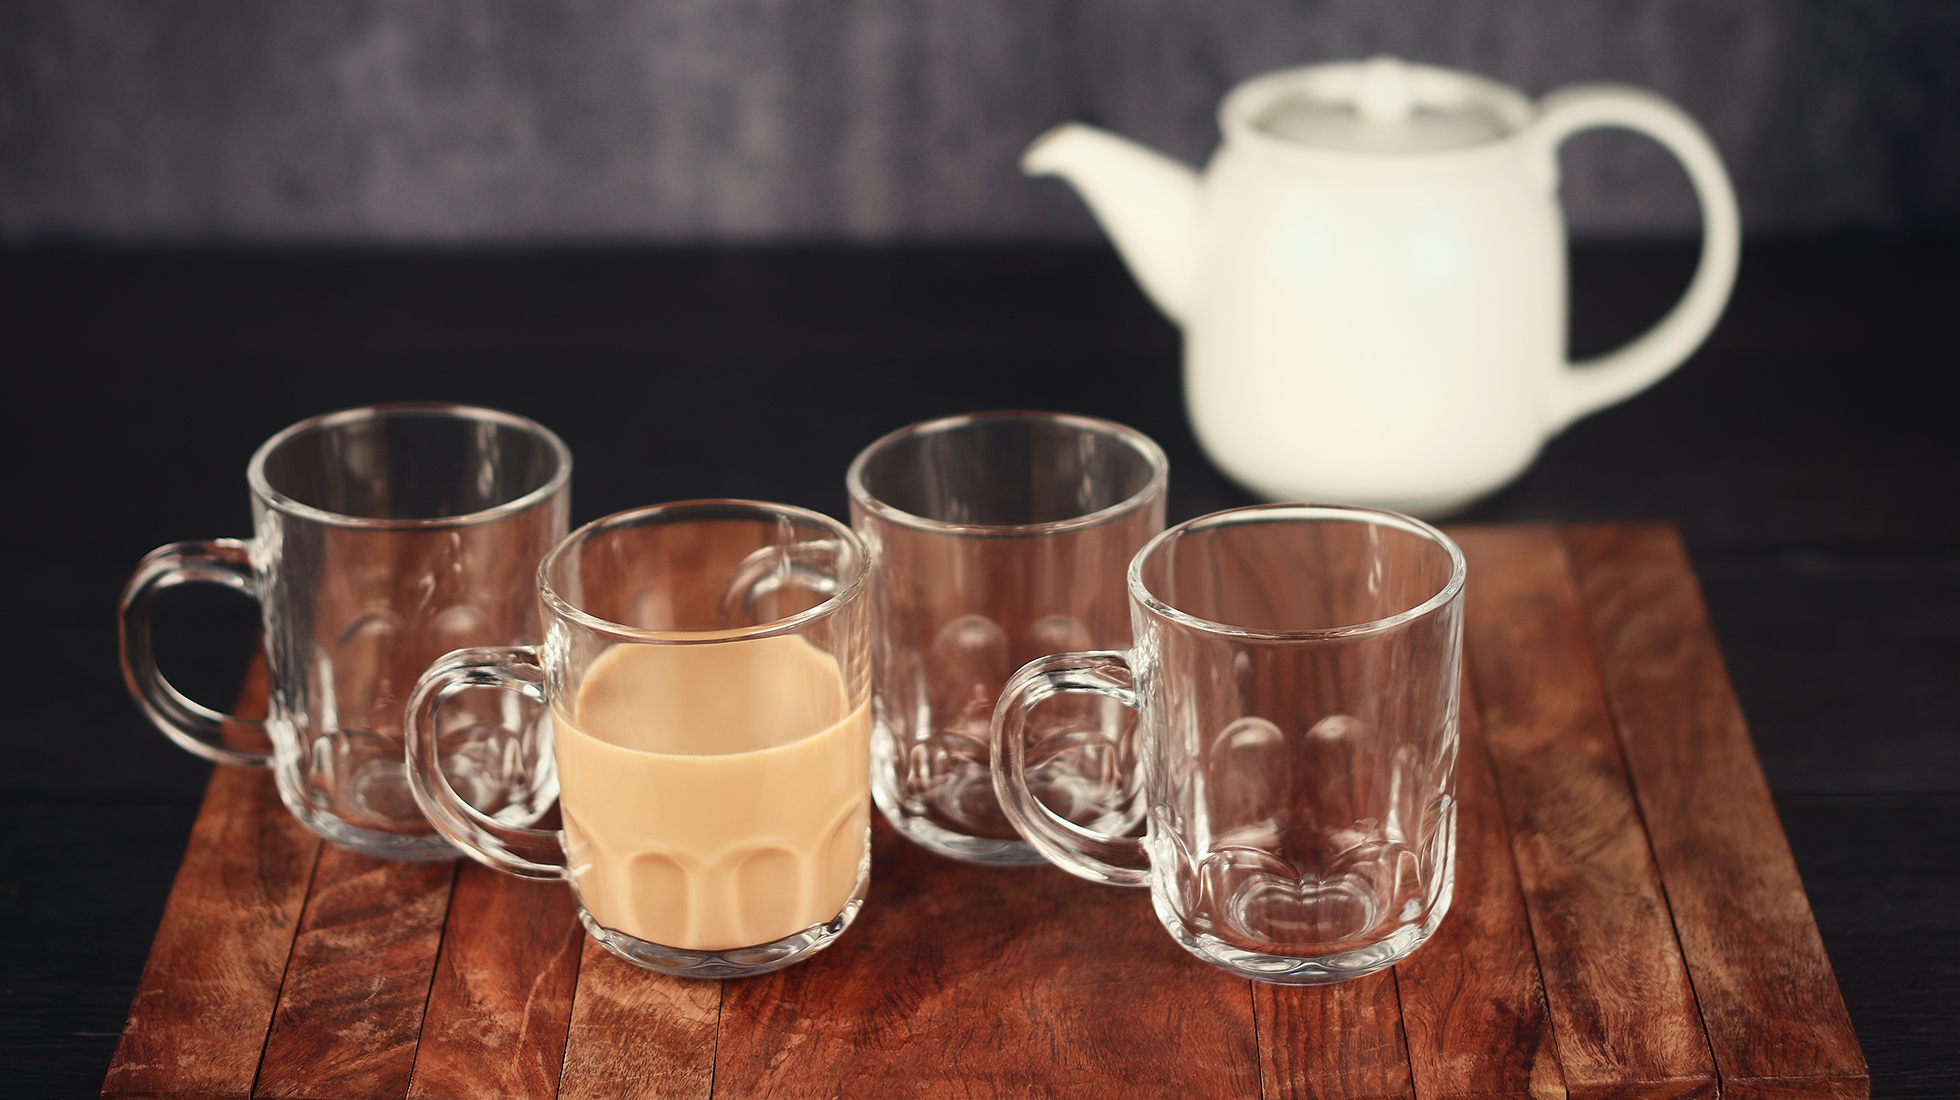 Femora Glass Crown Tea Mug Coffee Mug - Set of 4 - 210 ML